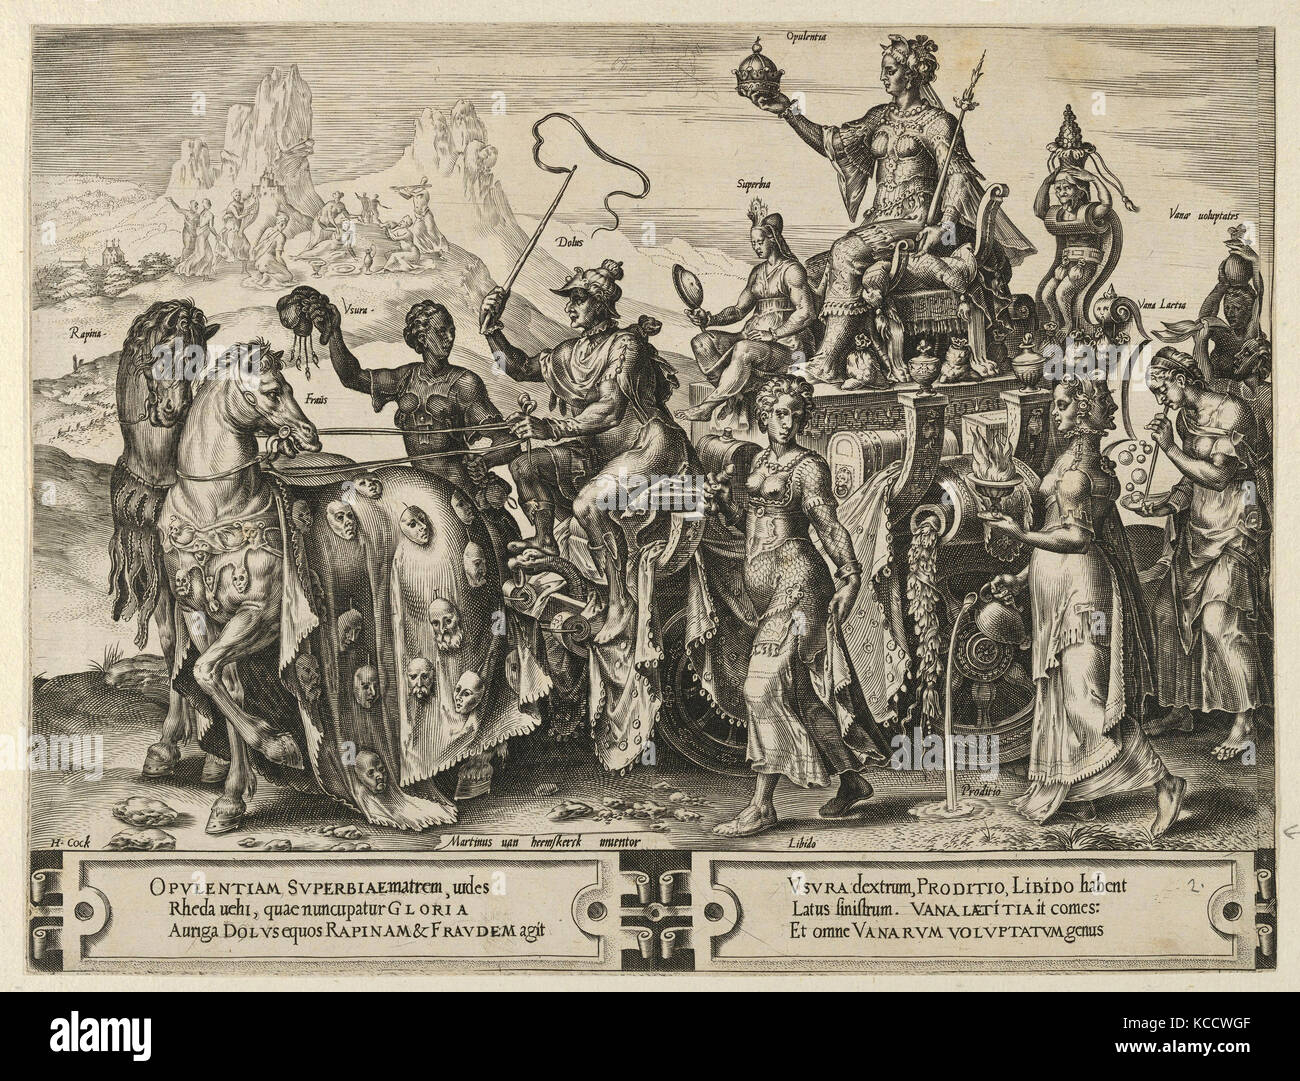 Drawings and Prints, Print, The Triumph of the Riches, from The Cycle of the Vicissitudes of Human Affairs, plate - Stock Image